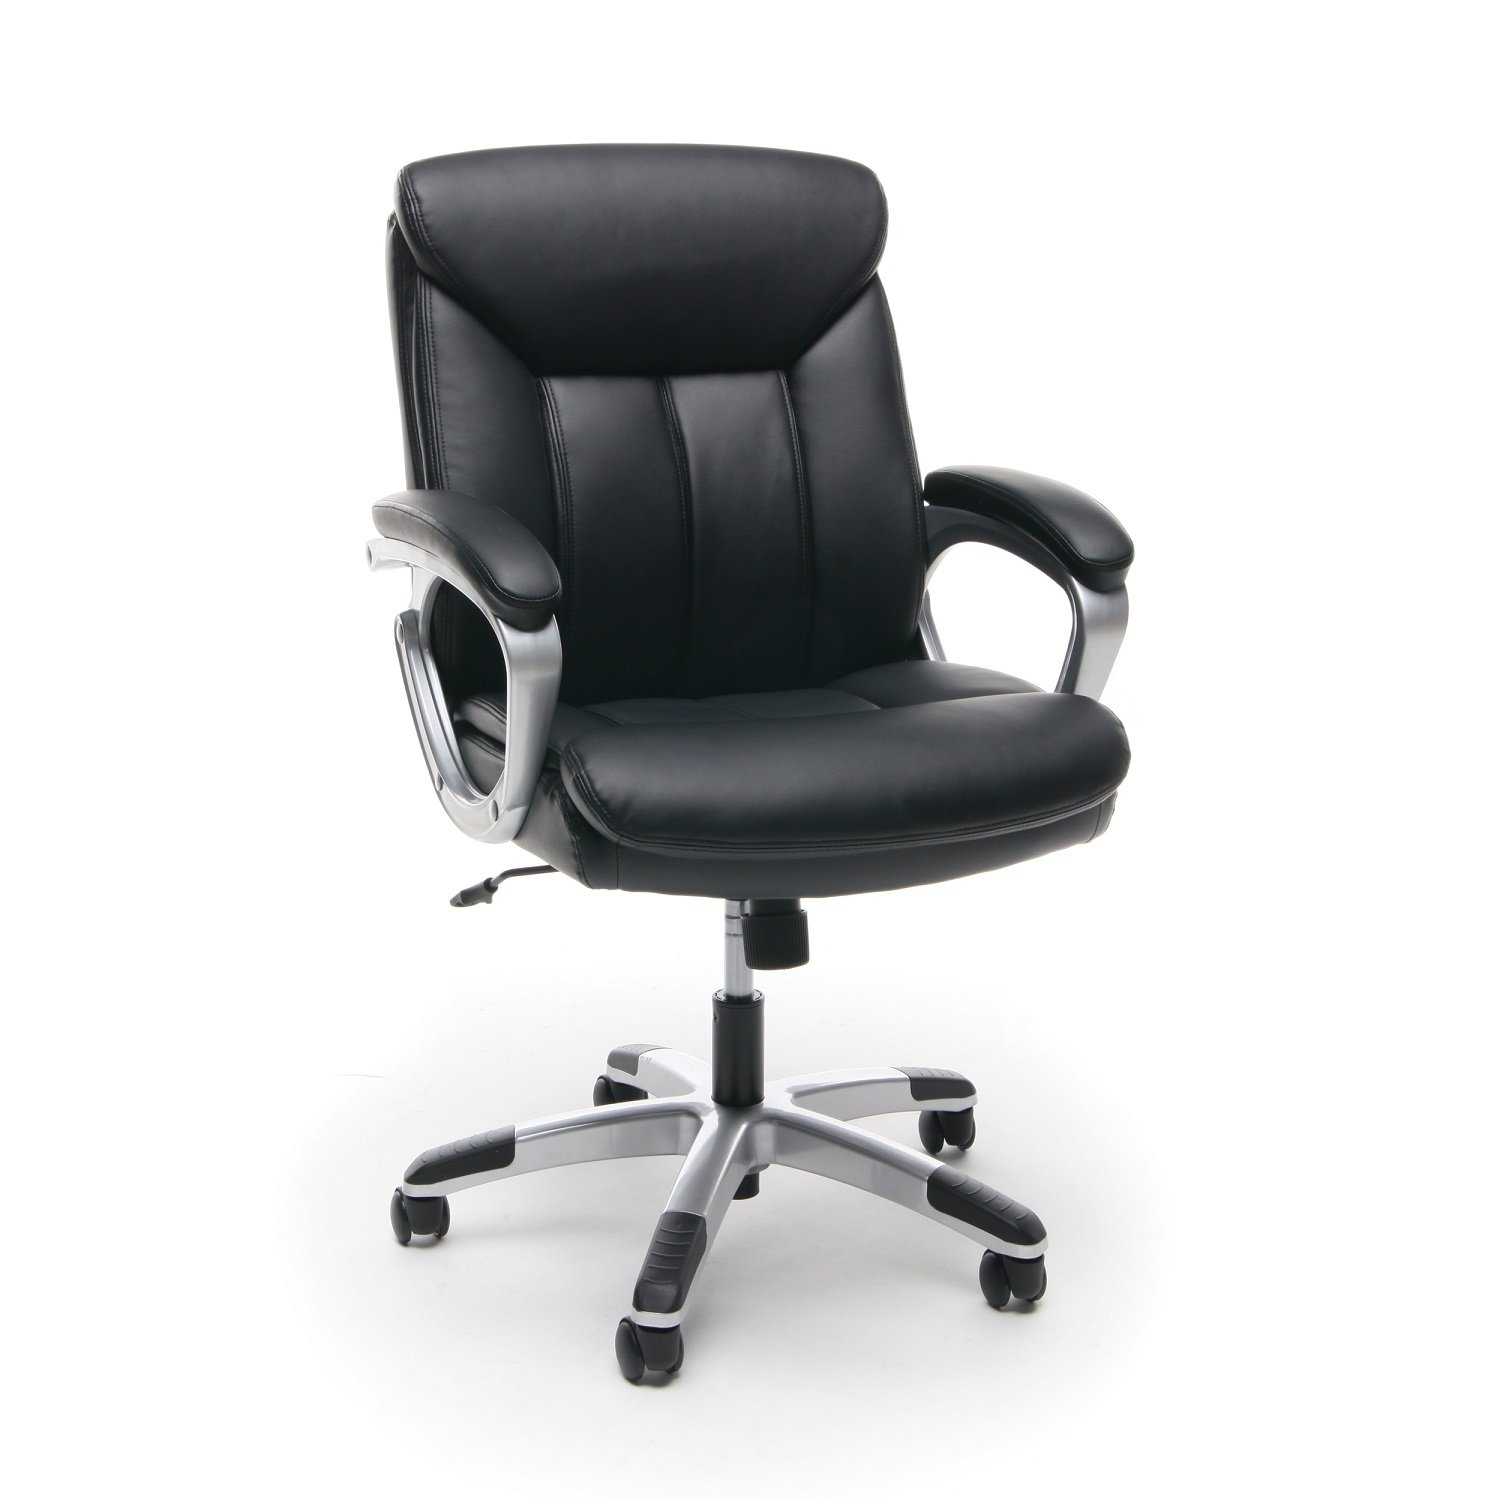 Essentials Leather Executive Computer/Office Chair with Arms - Ergonomic Swivel Chair (ESS-6020) by OFM